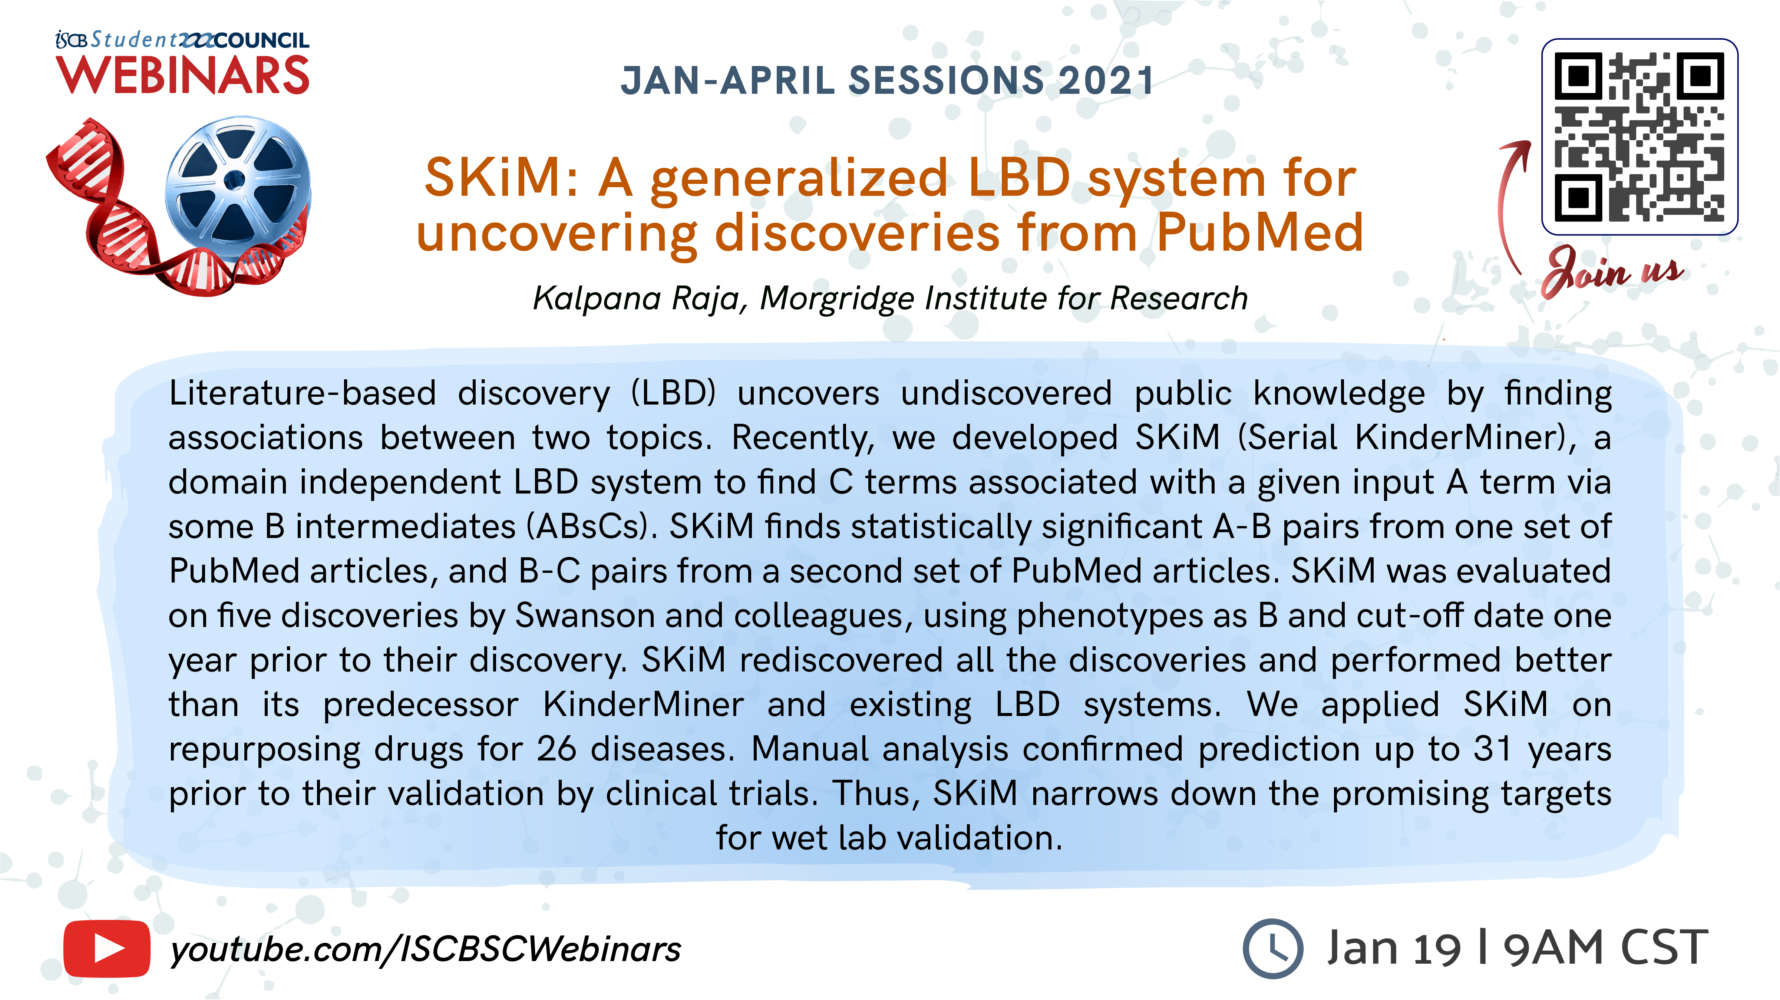 SKiM: A generalized LBD system for uncovering discoveries from PubMed